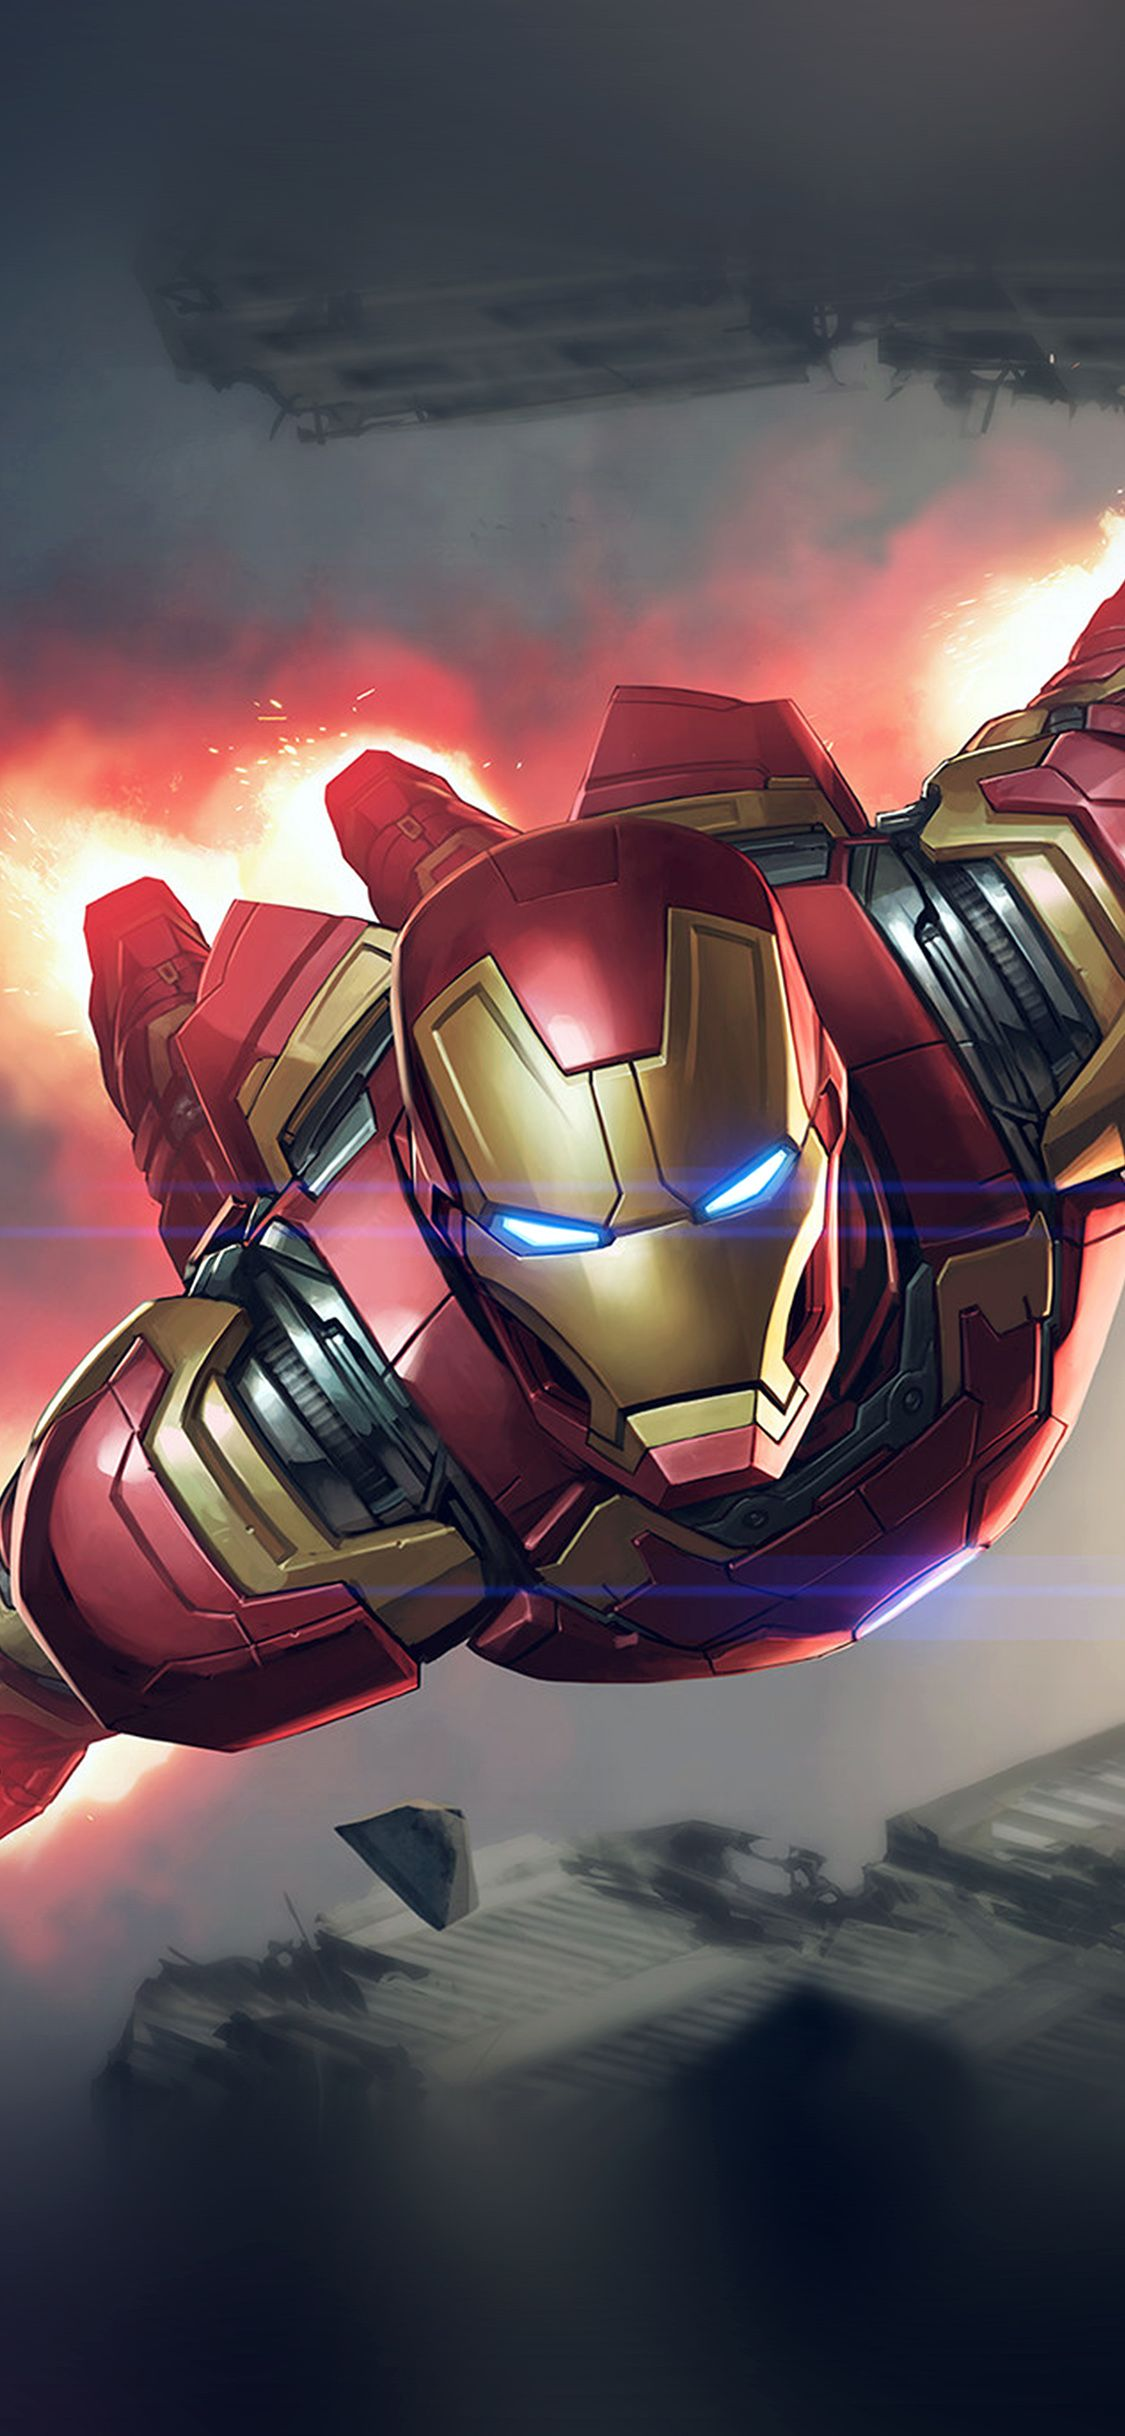 Pin By Raj Gupta On Wallpaper In 2018 Pinterest Marvel Iron Man